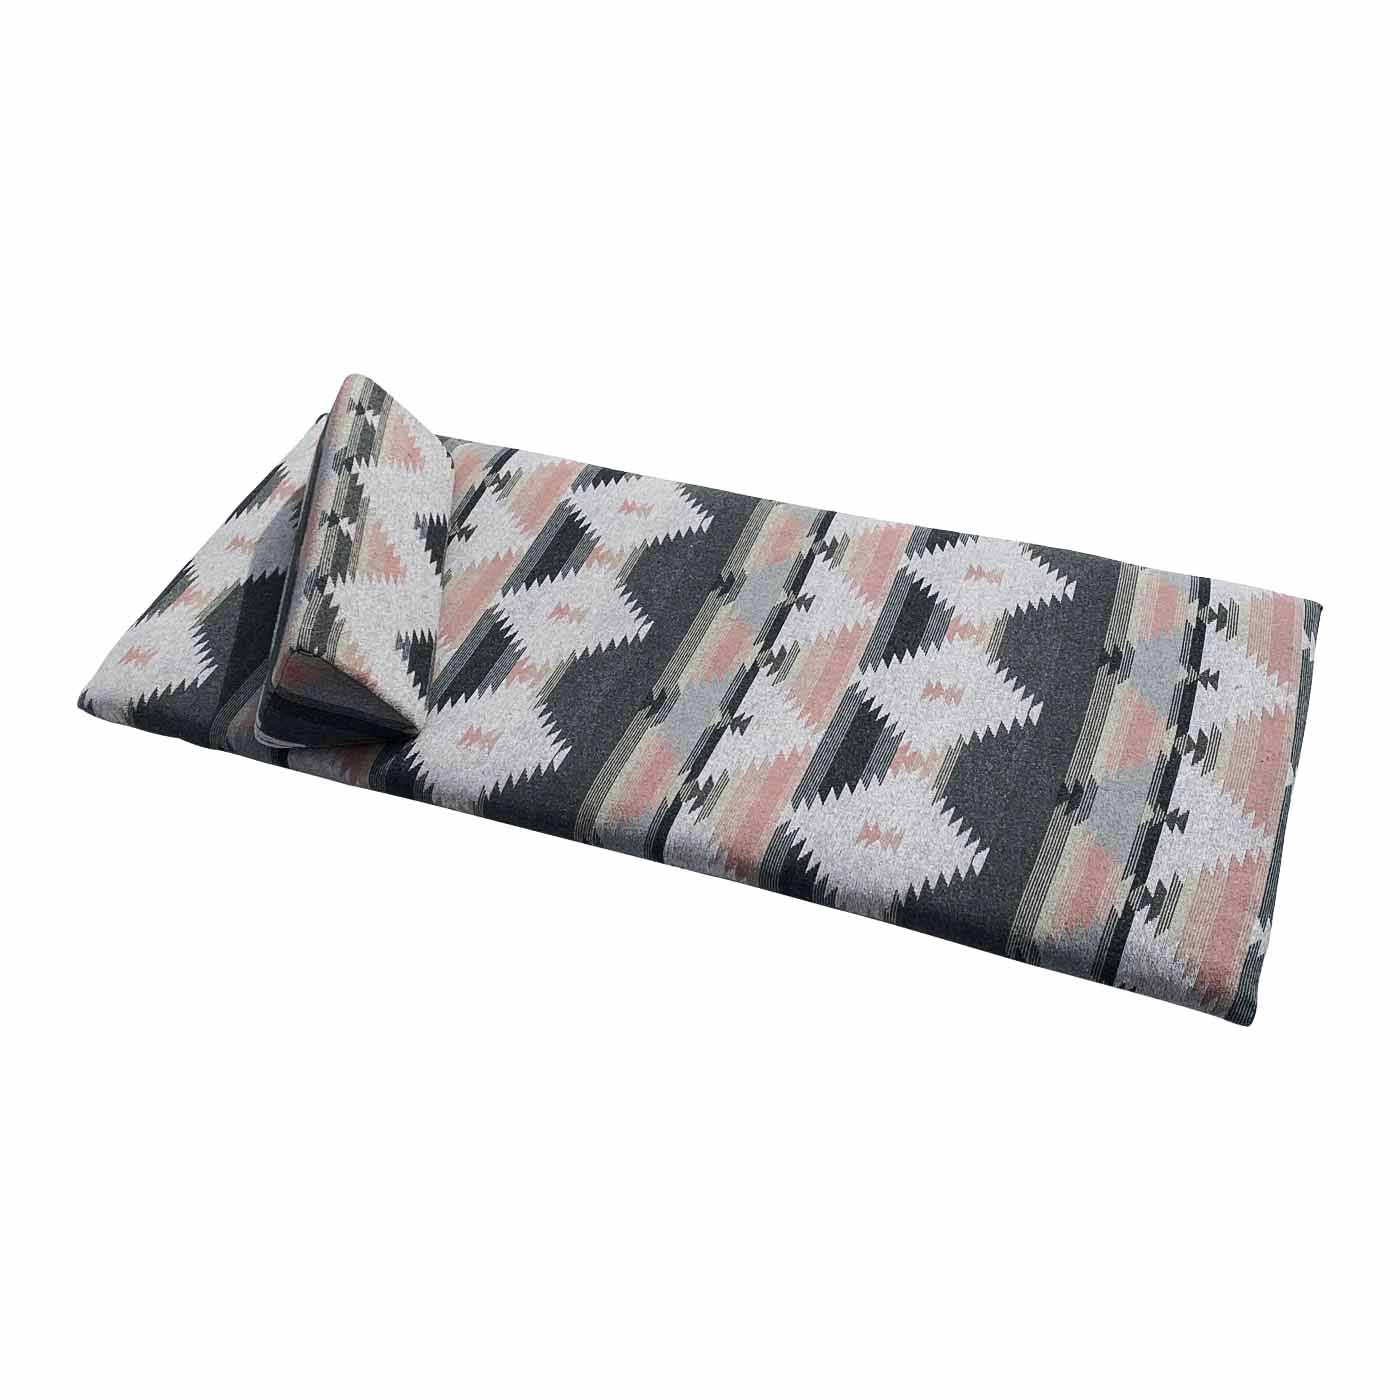 Nador Pink Patterned Floor Mattress